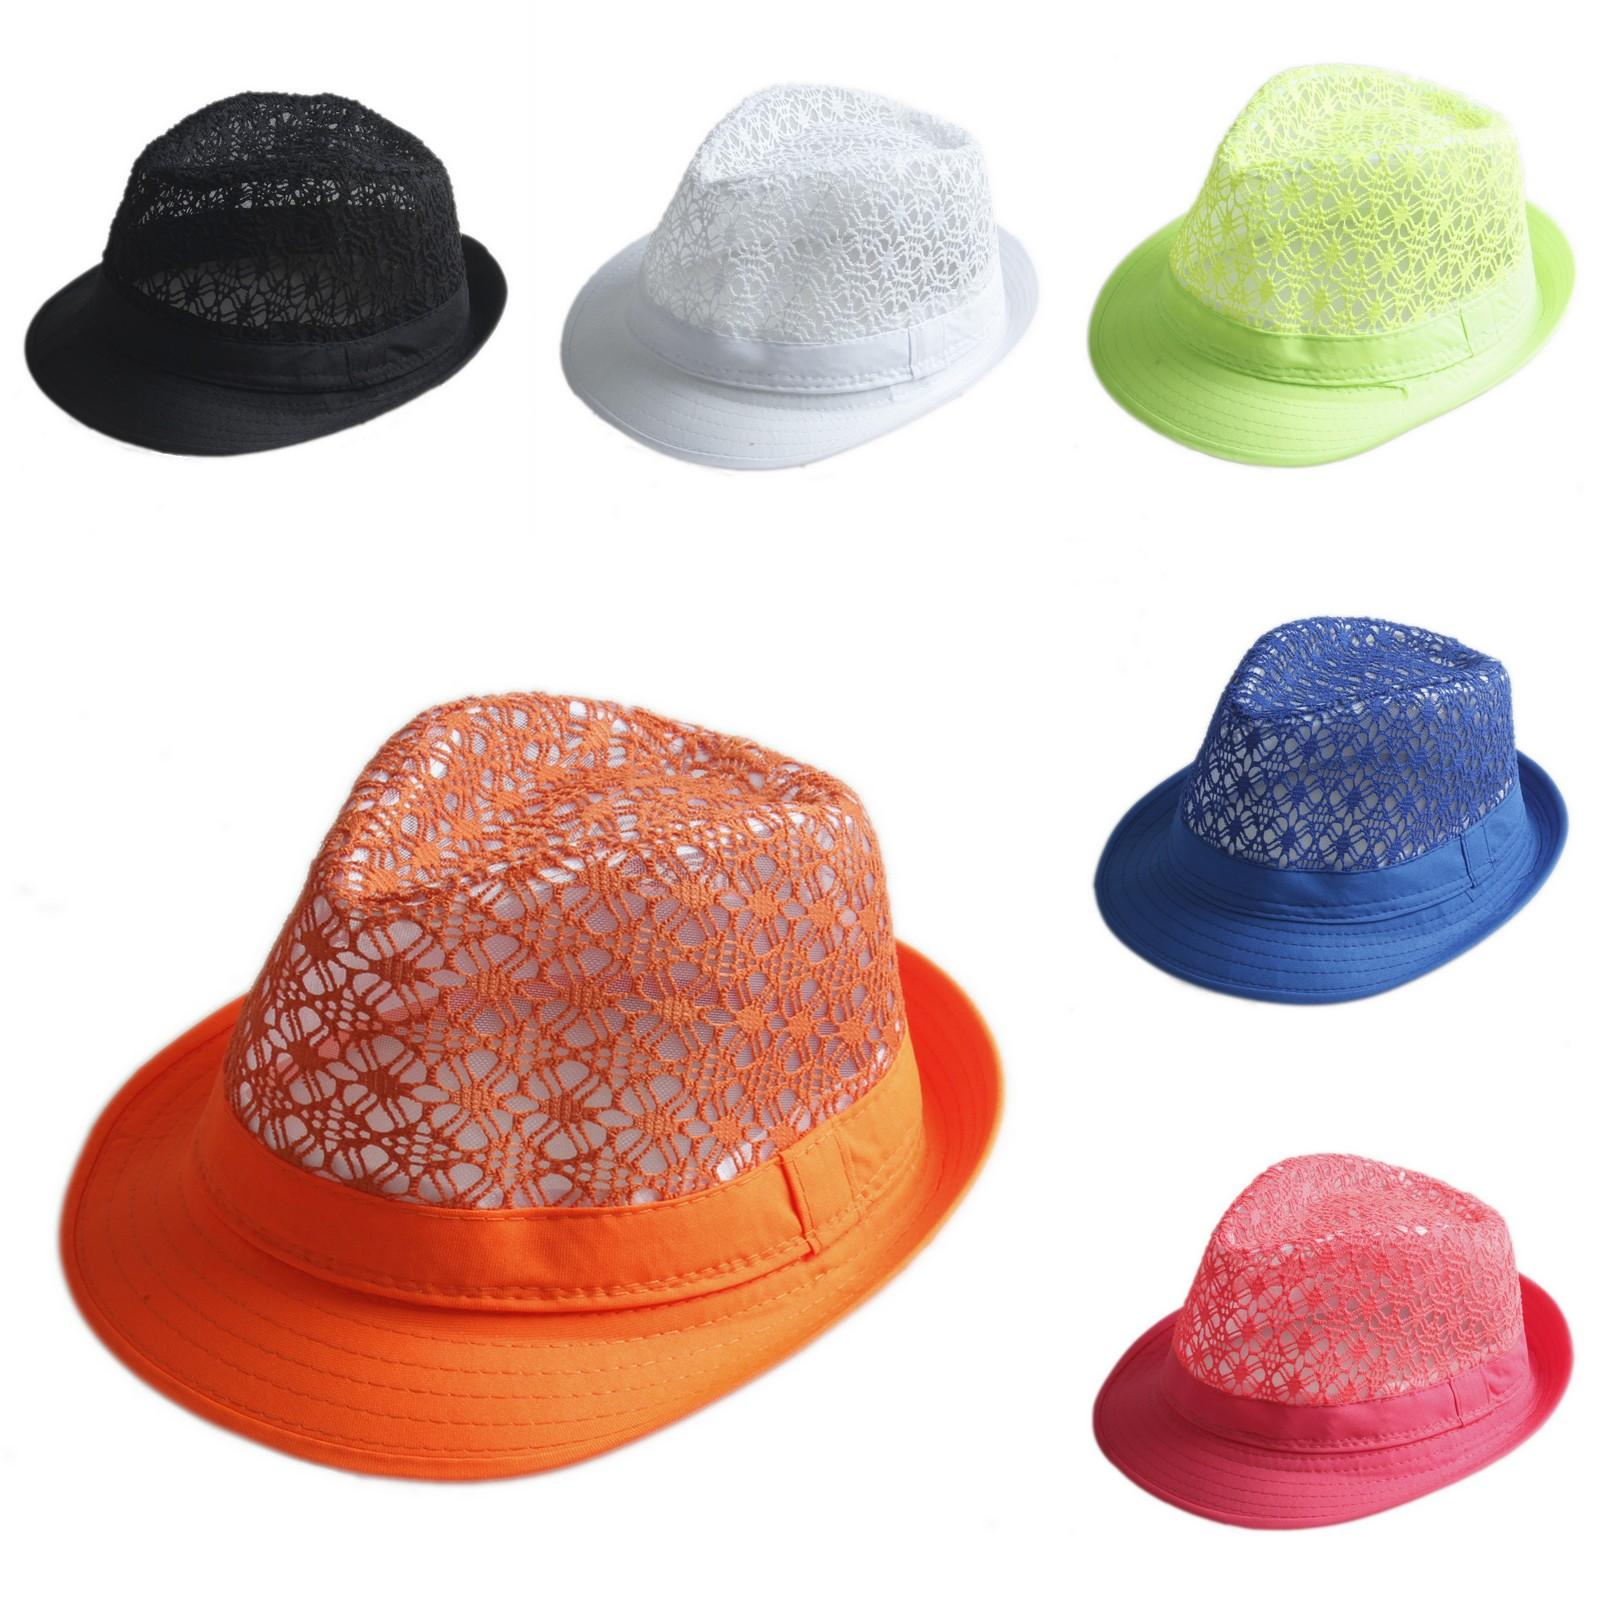 bc9e7dfaa4e 2019 Women Men Summer Hollow Top Crown Fedora Hat Trilby Beach Jazz Cap  Cotton Blend From Artstyle